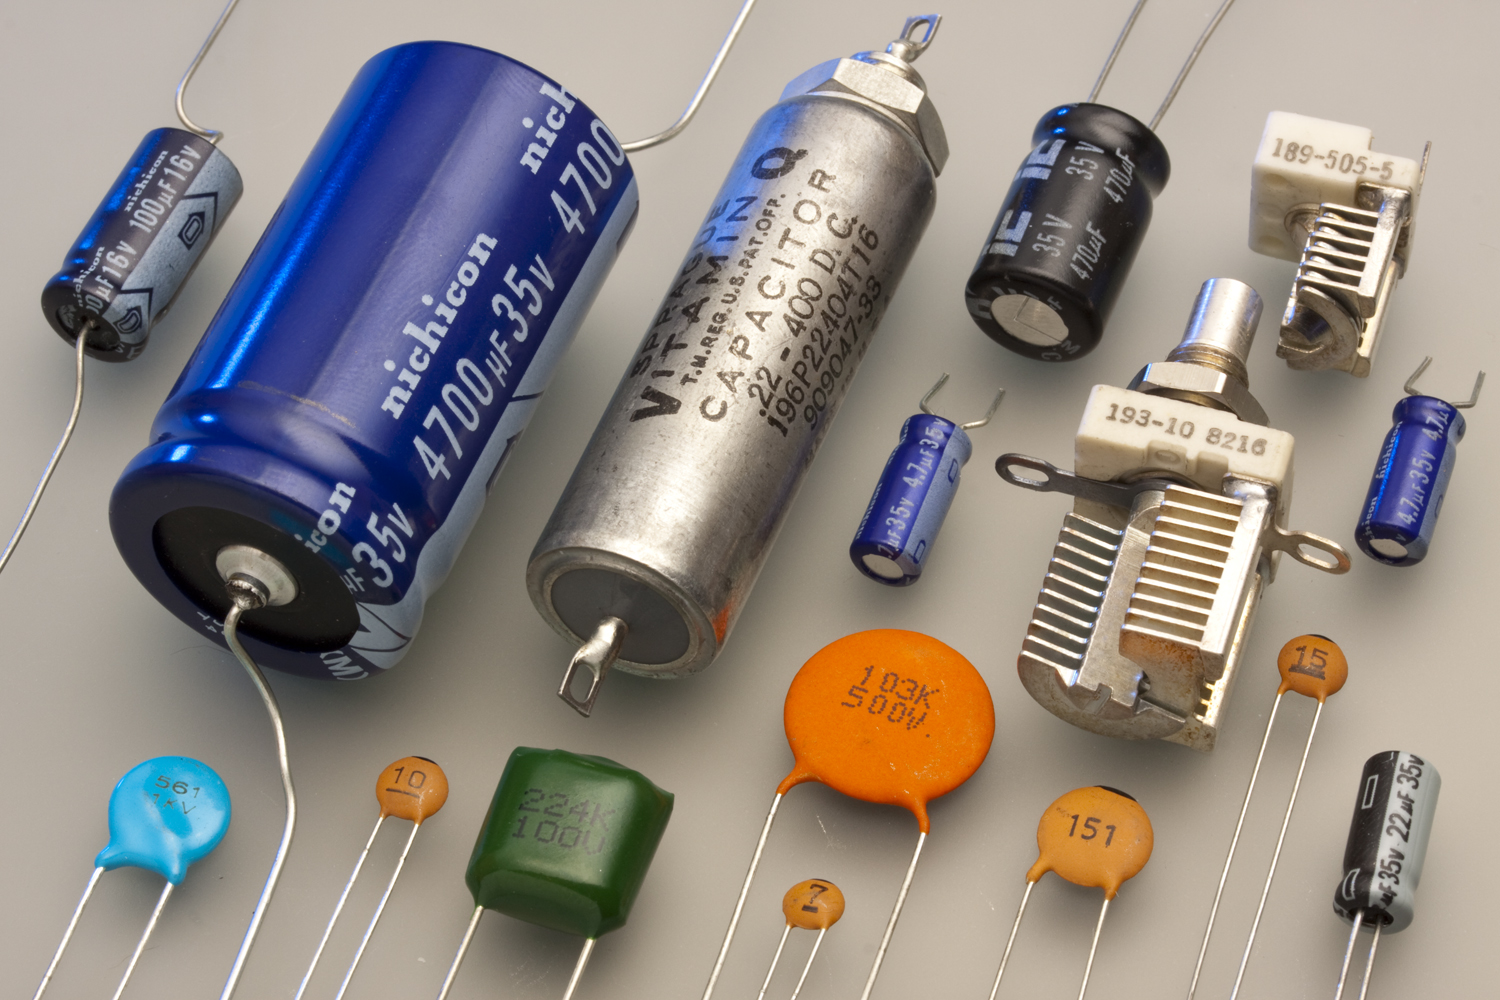 Capacitor Wikipedia How Are Printed Circuit Boards Made Image Search Results